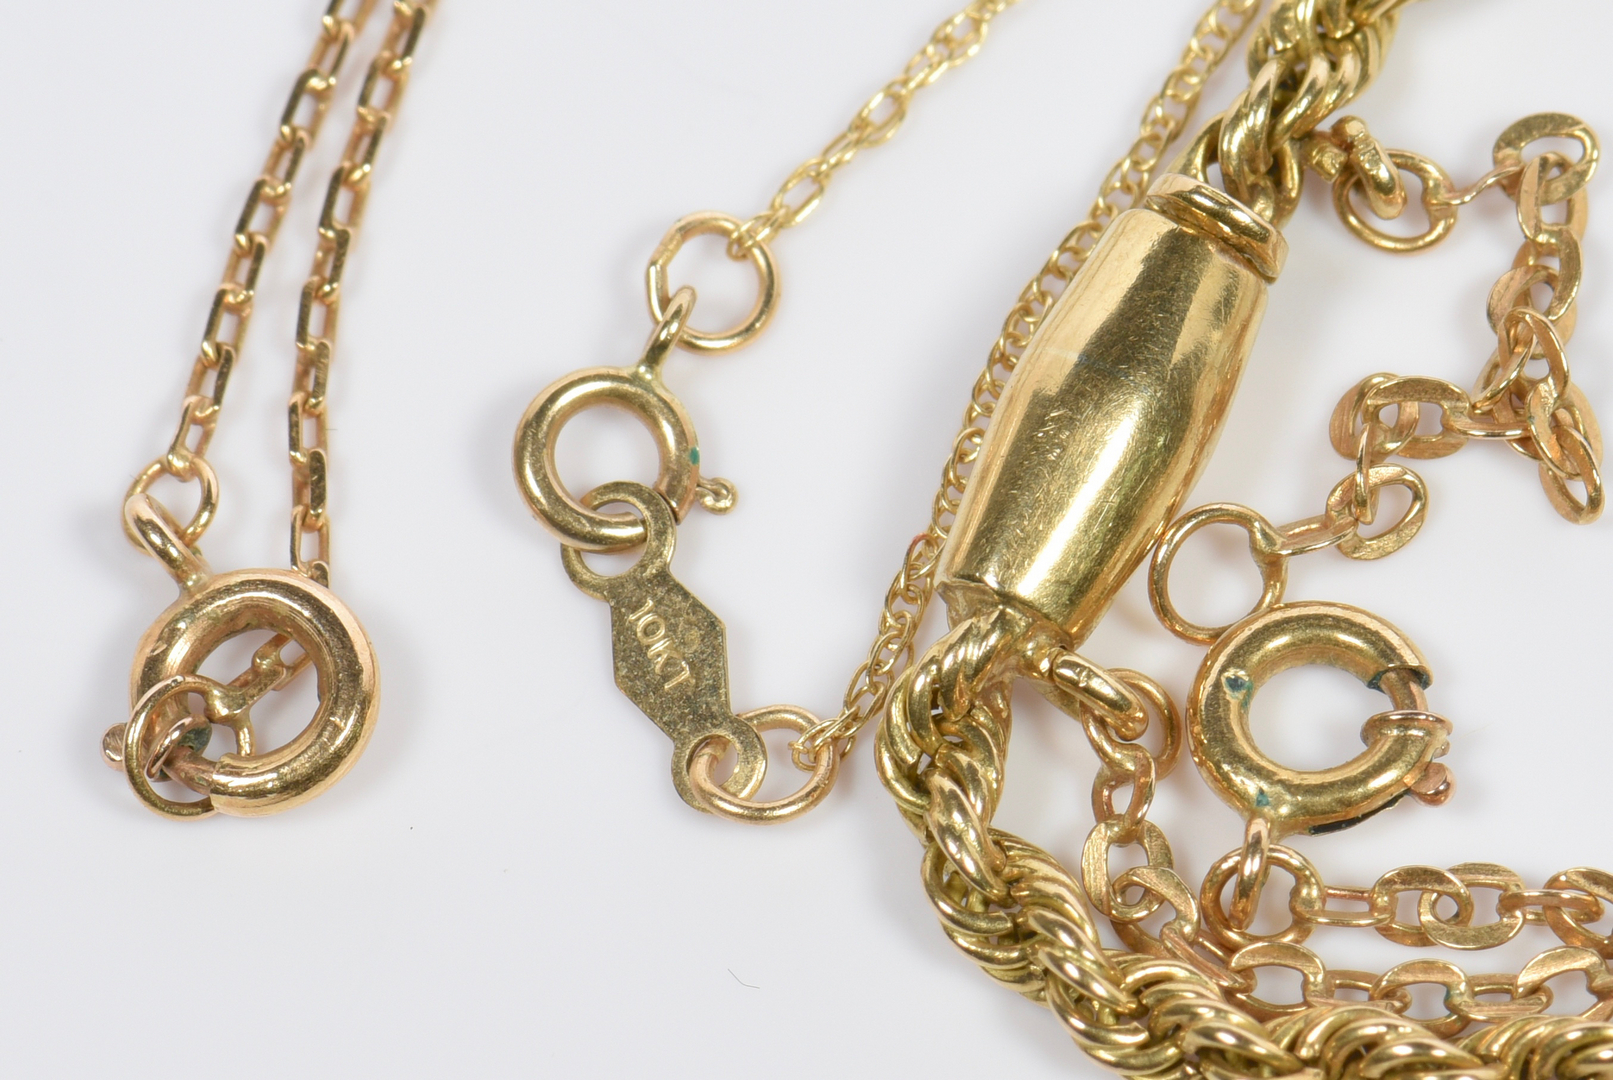 Lot 957 Group Of Gold Jewelry 11 Items